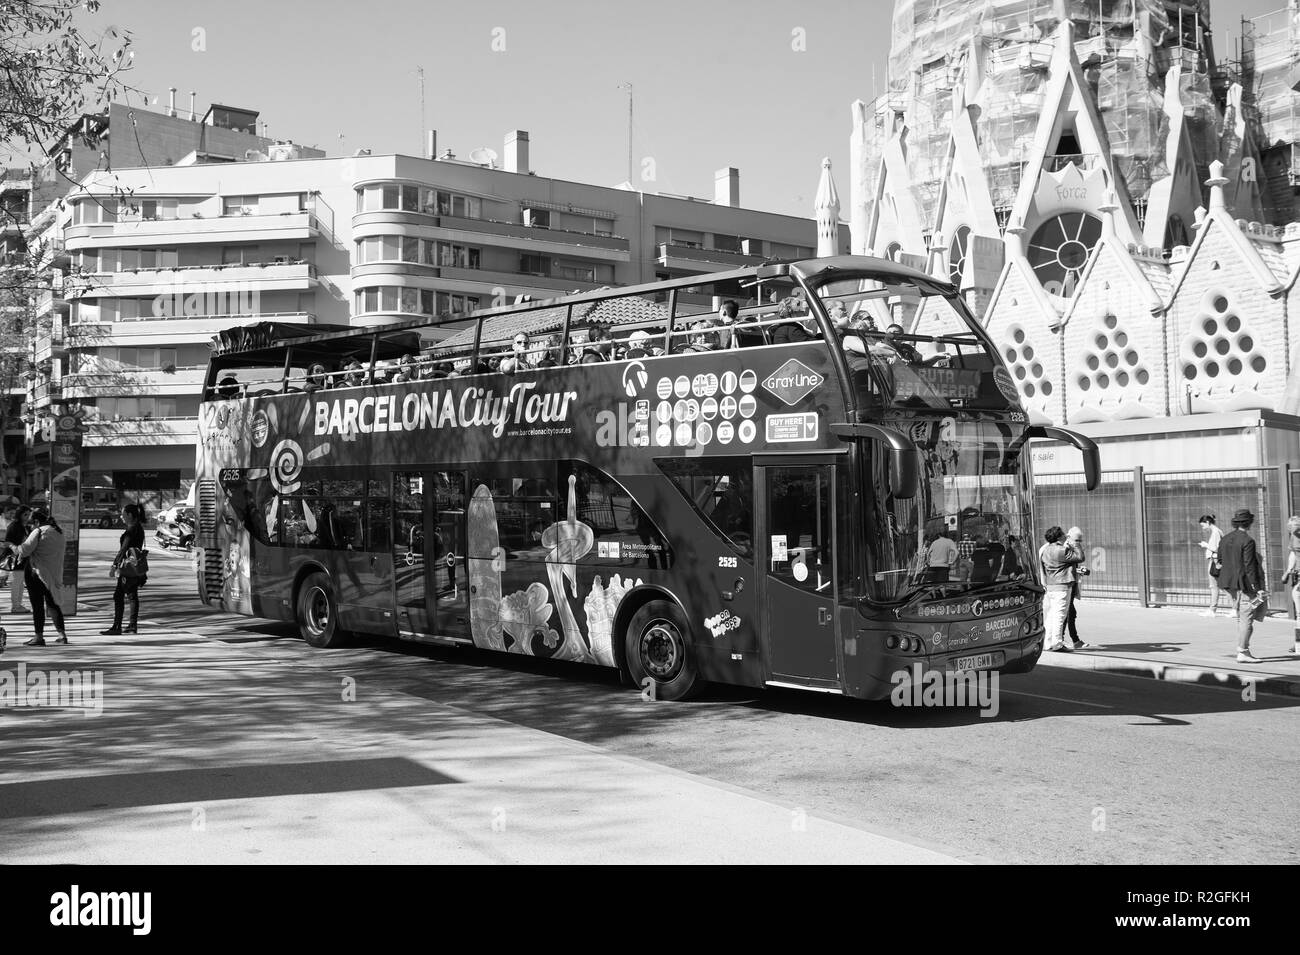 Barcelona, Spain - March 30, 2016: Barcelona city tour bus on street. Sightseeing and travelling. Transport for trip around Barcelona. Summer vacation in Barcelona. Stock Photo